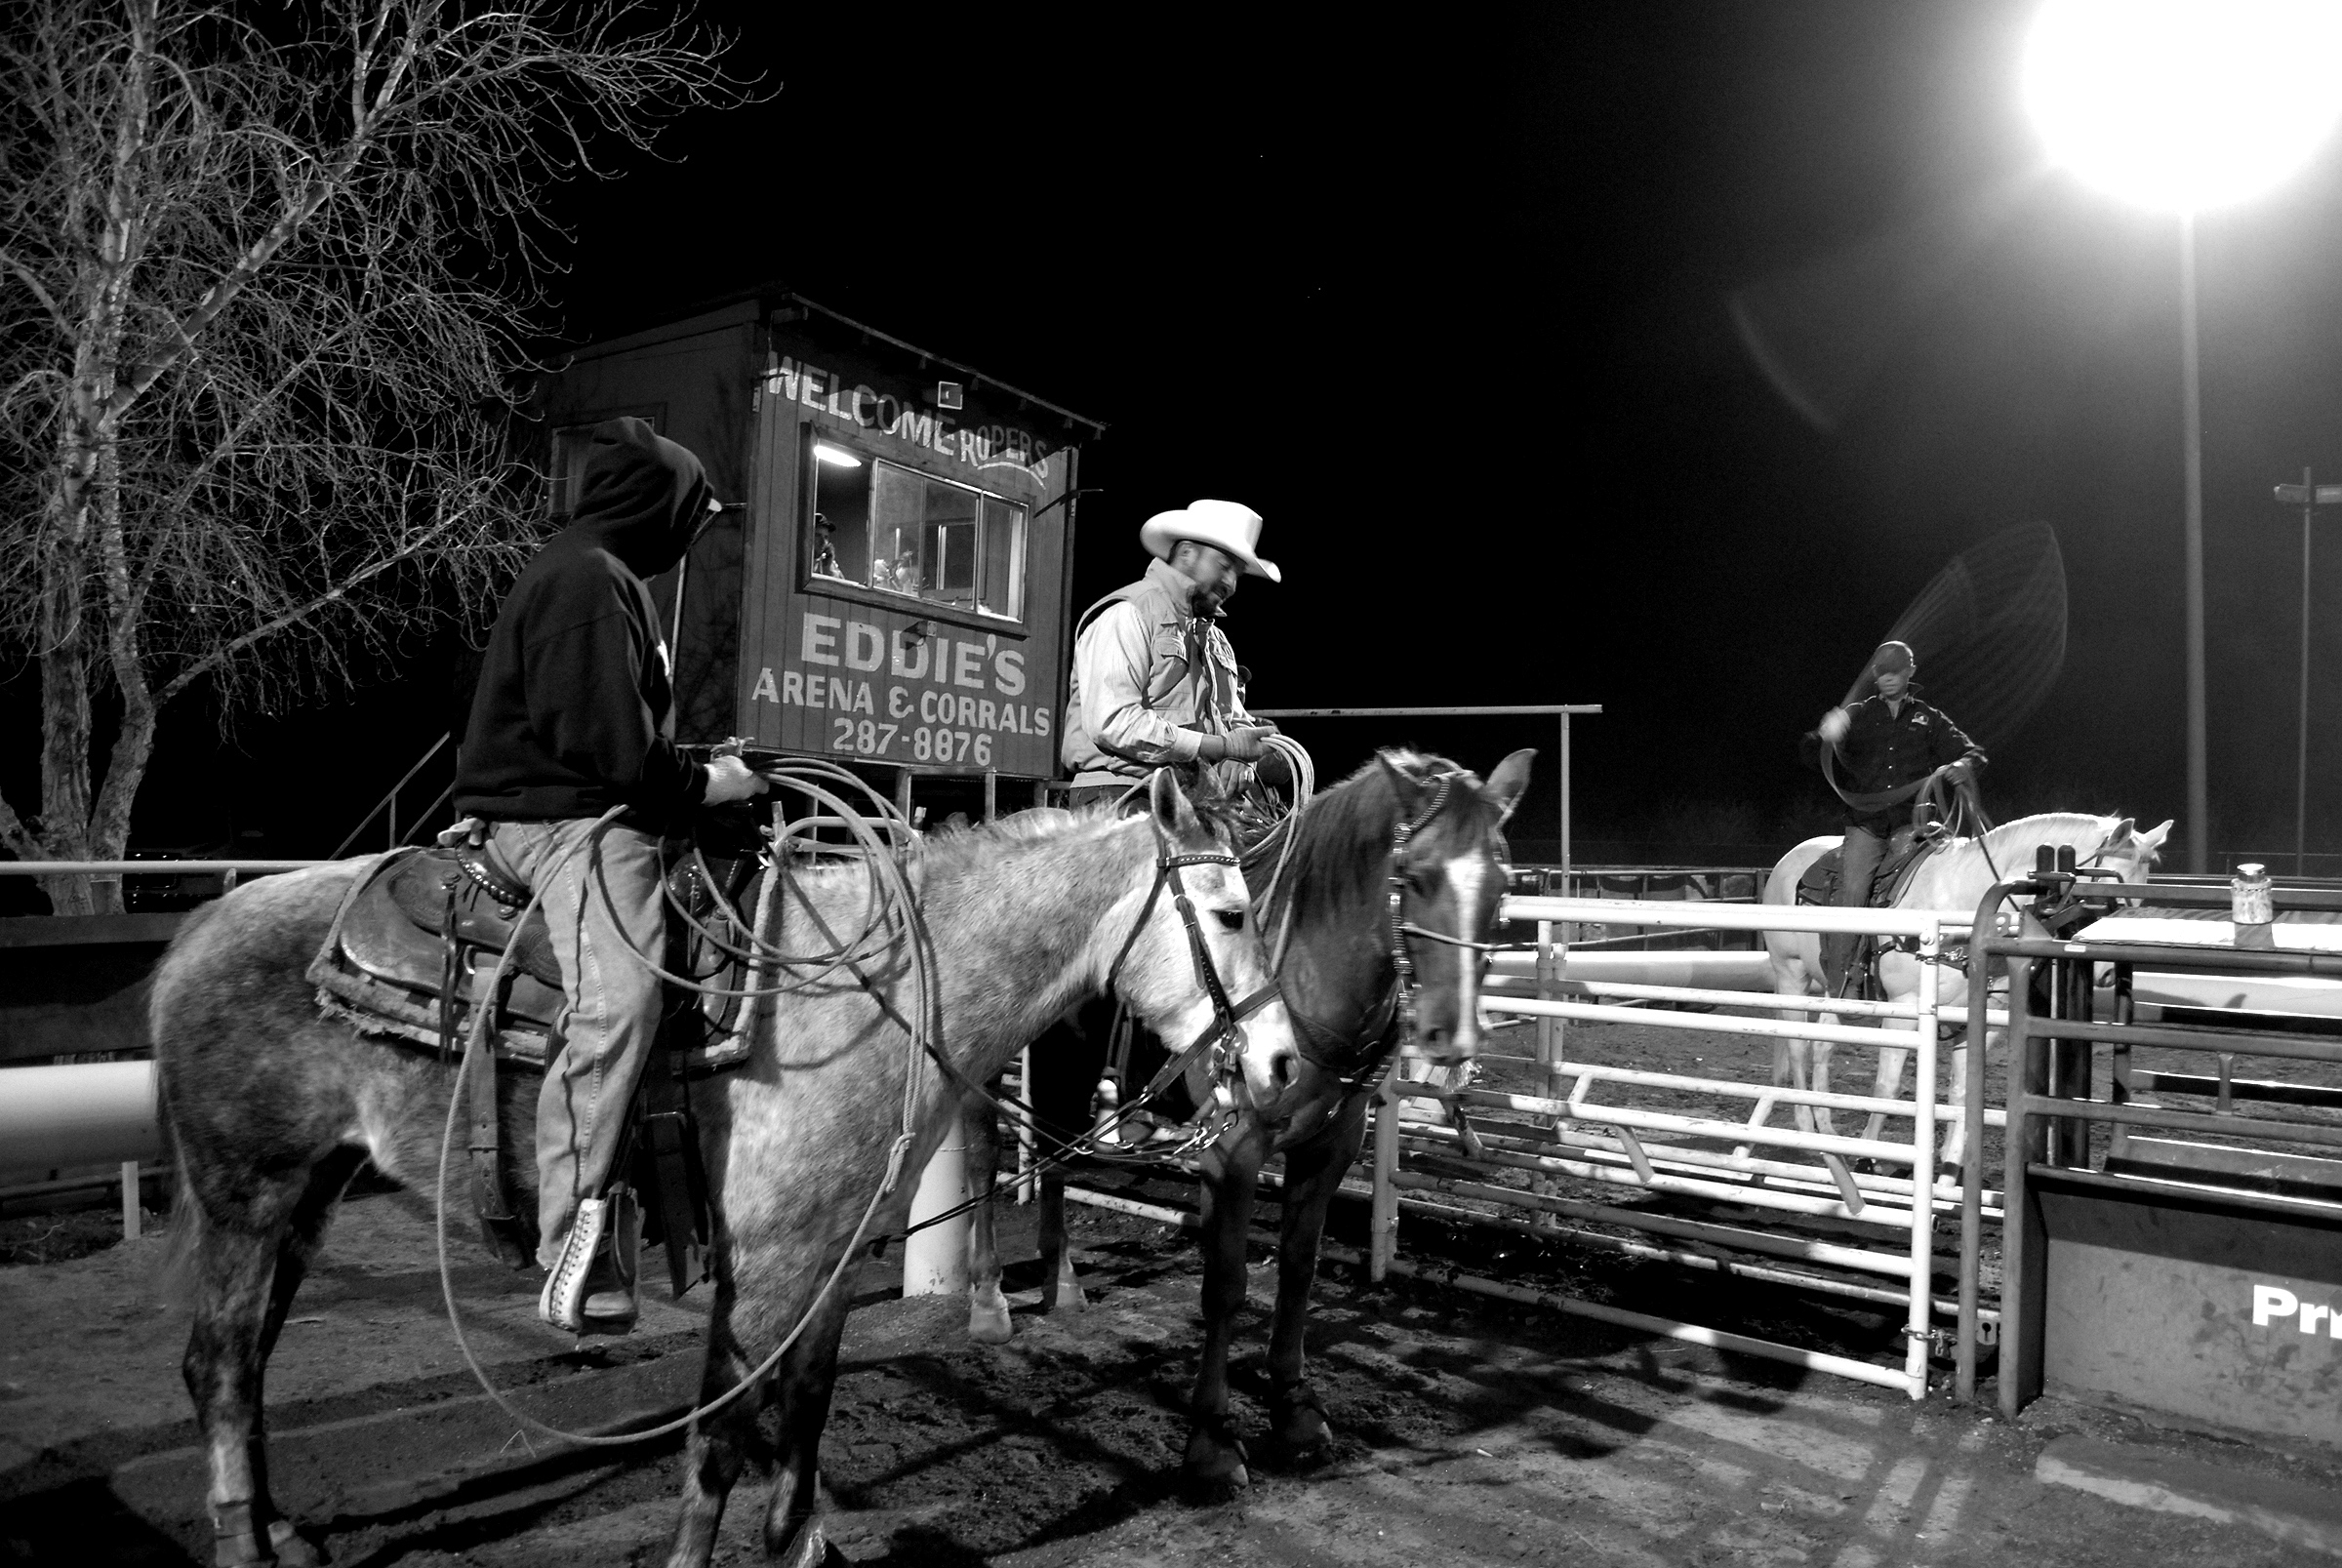 Three cowboys on horseback holding lassos in a small rodeo arena